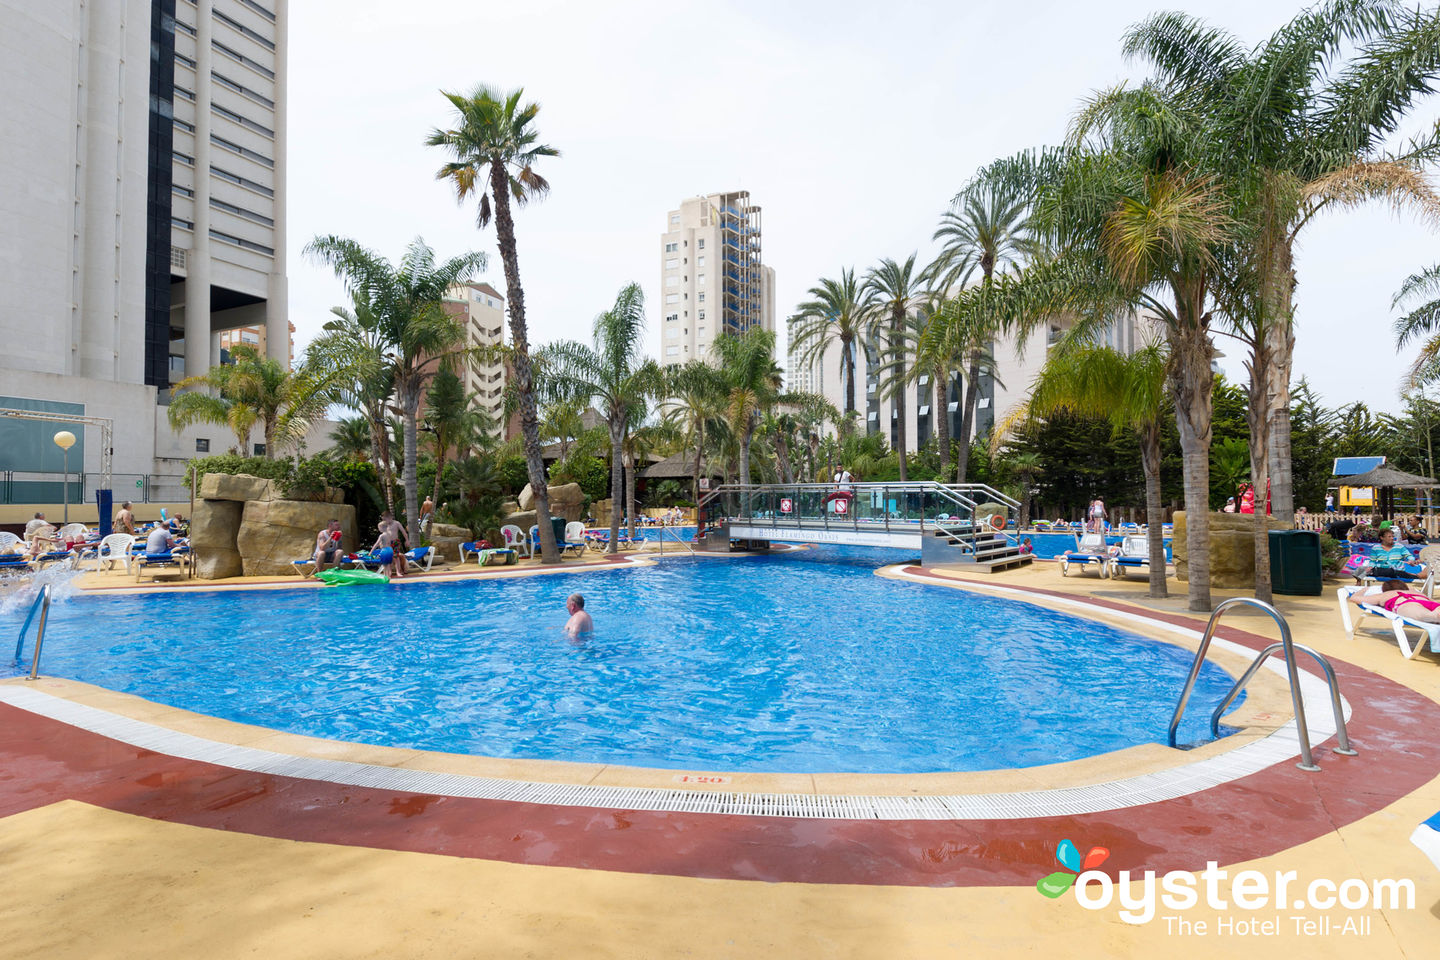 Flamingo Pool Dates Hotel Flamingo Oasis Review Updated Rates Sep 2019